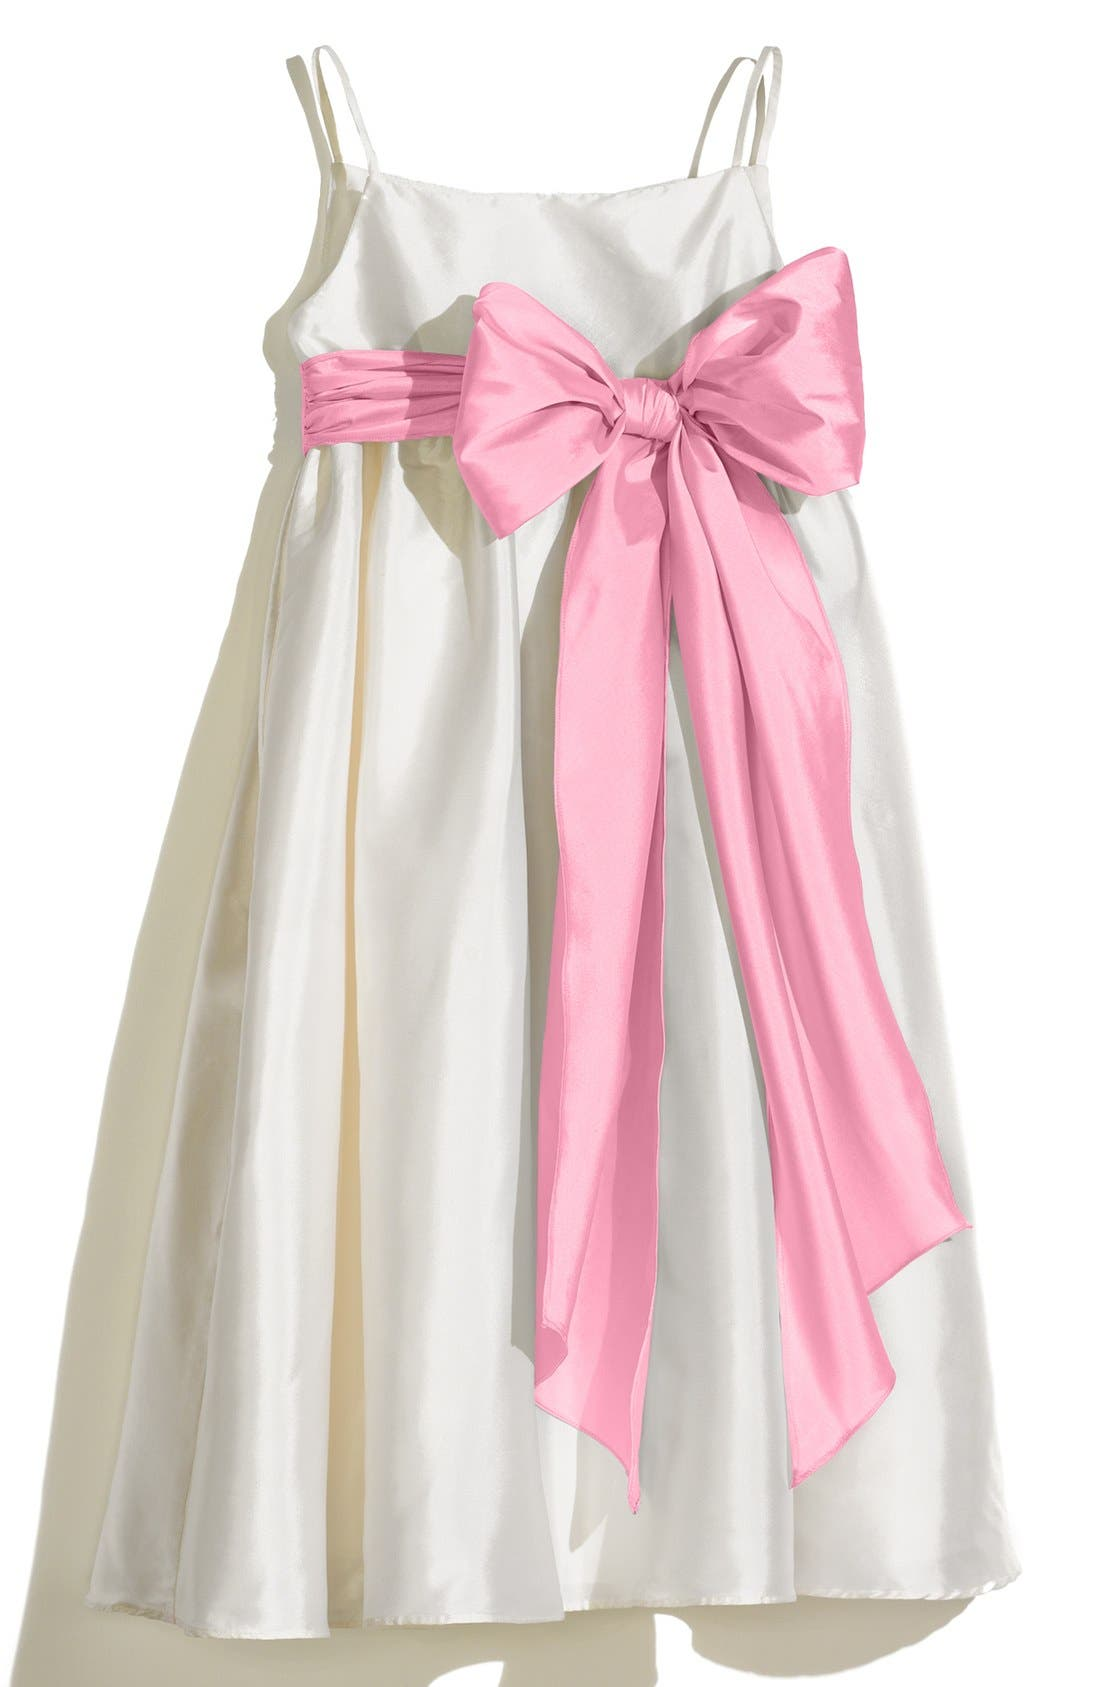 A-Line Dress with Sash,                             Main thumbnail 1, color,                             Ivory/ Cotton Candy